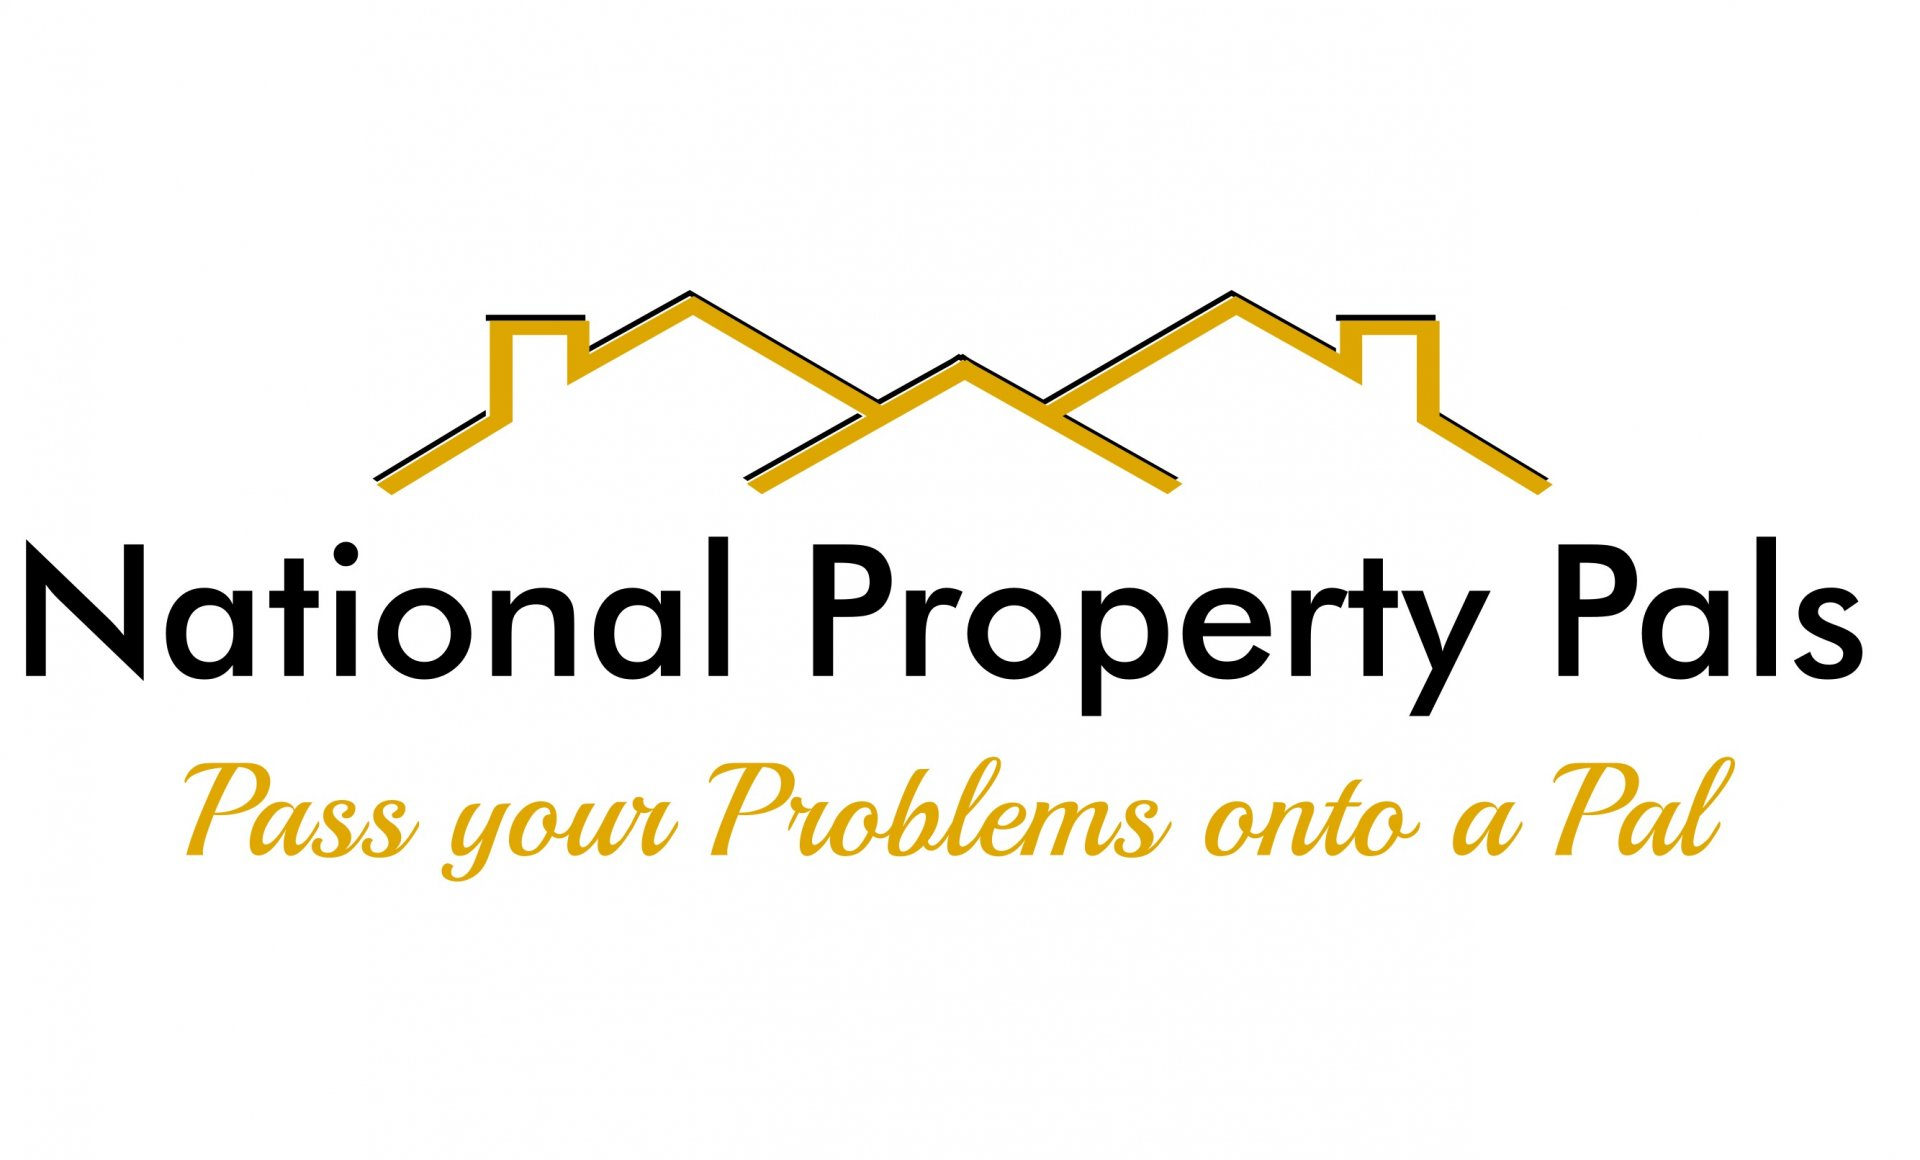 National Property Pals logo